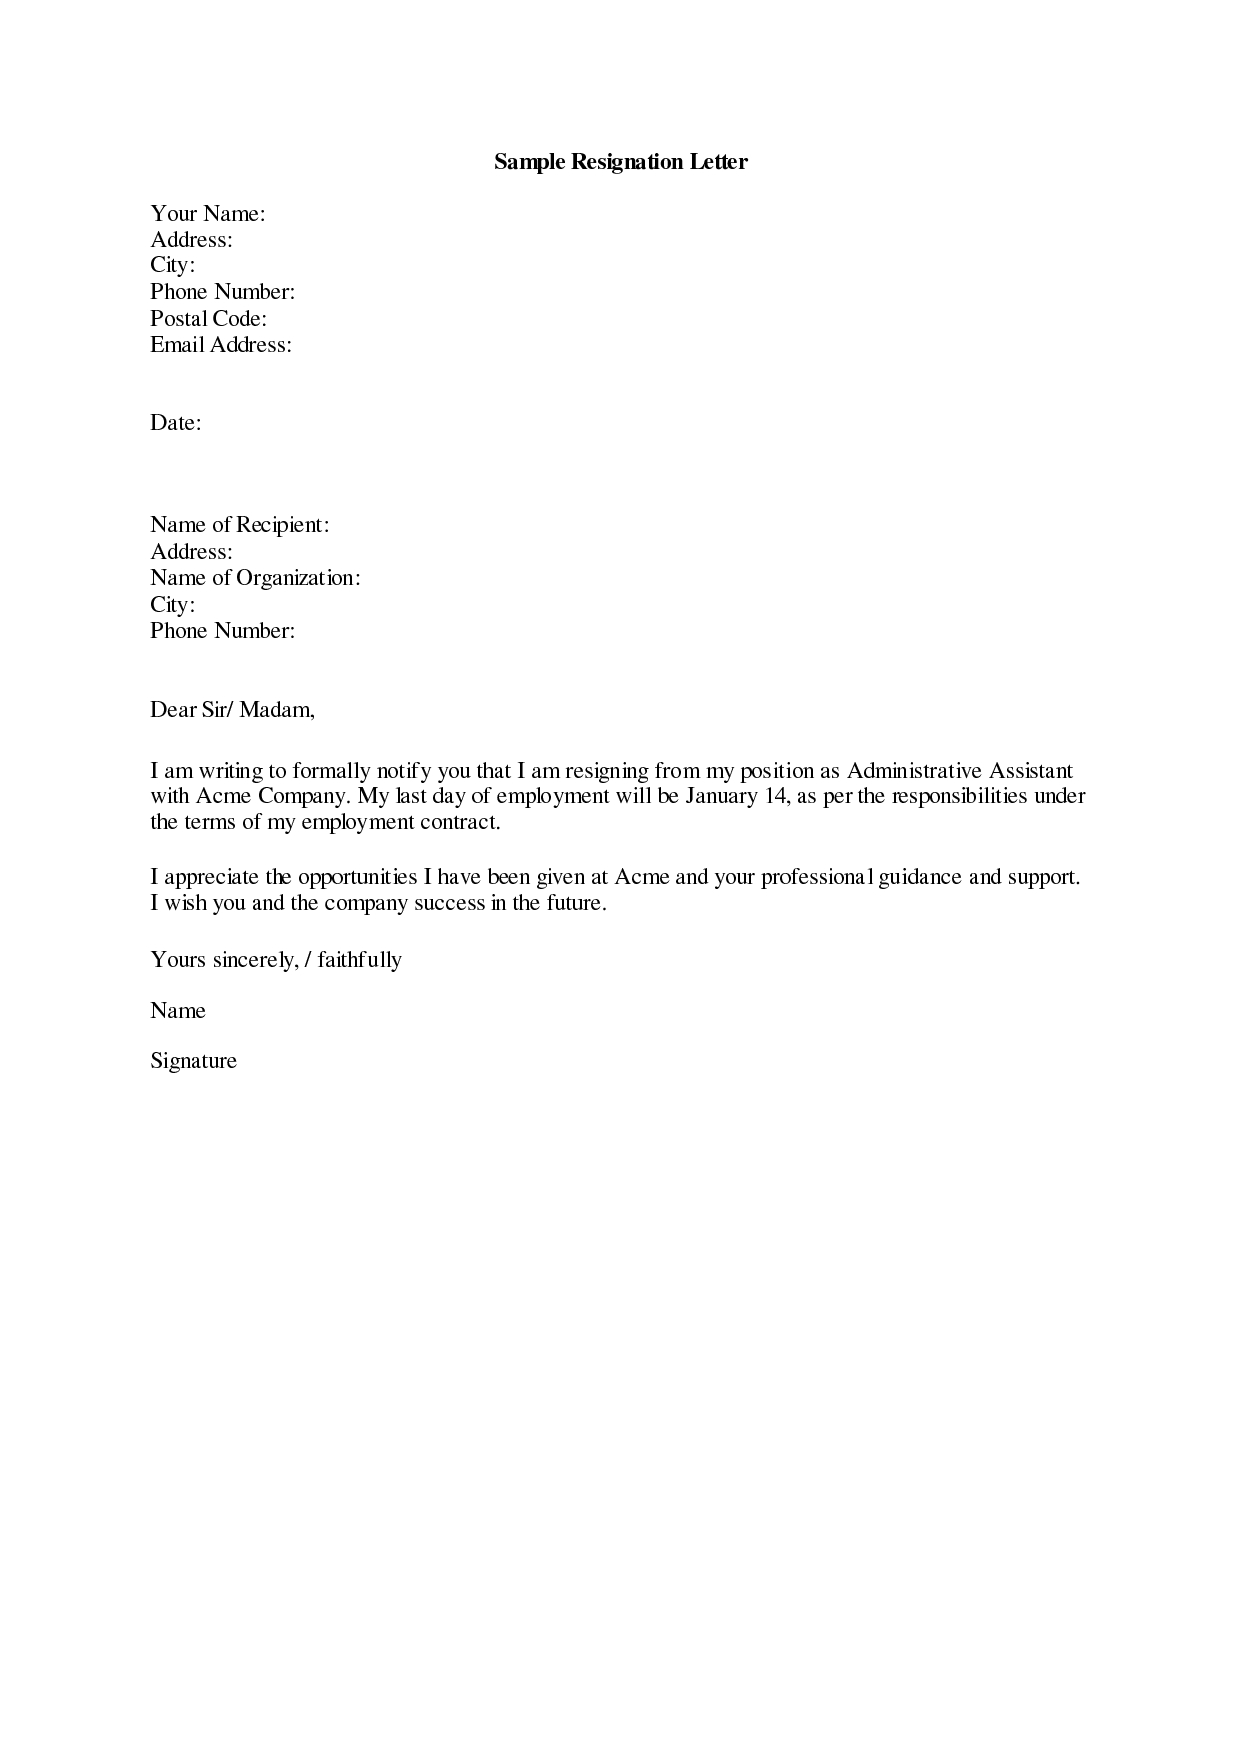 Sample Resignation Letter Template - Resignation Letter Sample 19 Letter Of Resignation